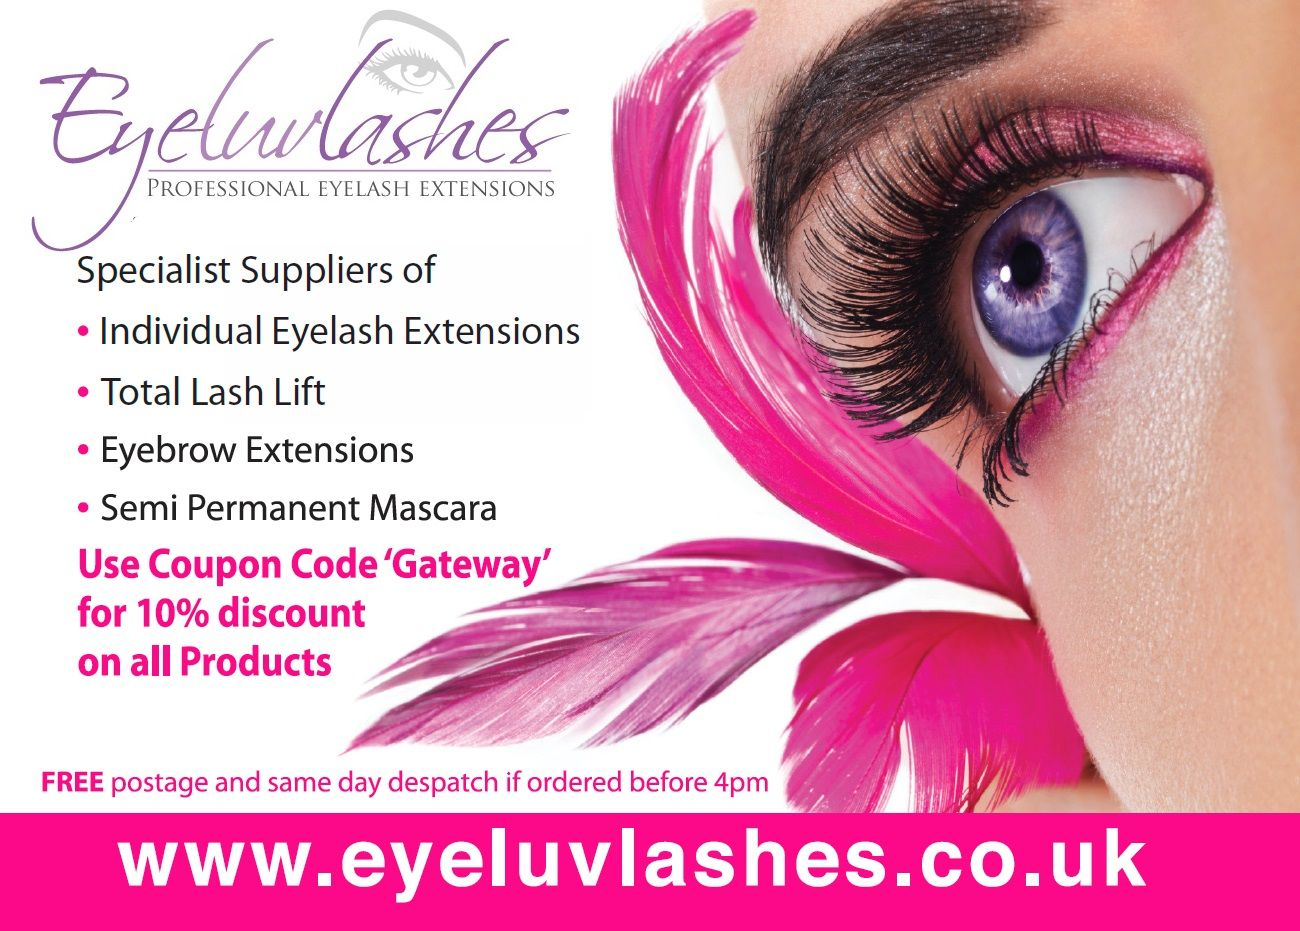 4eefd17c405 Eyelash Extension, Lash Lift, Eyebrow Extension and More - Products ...